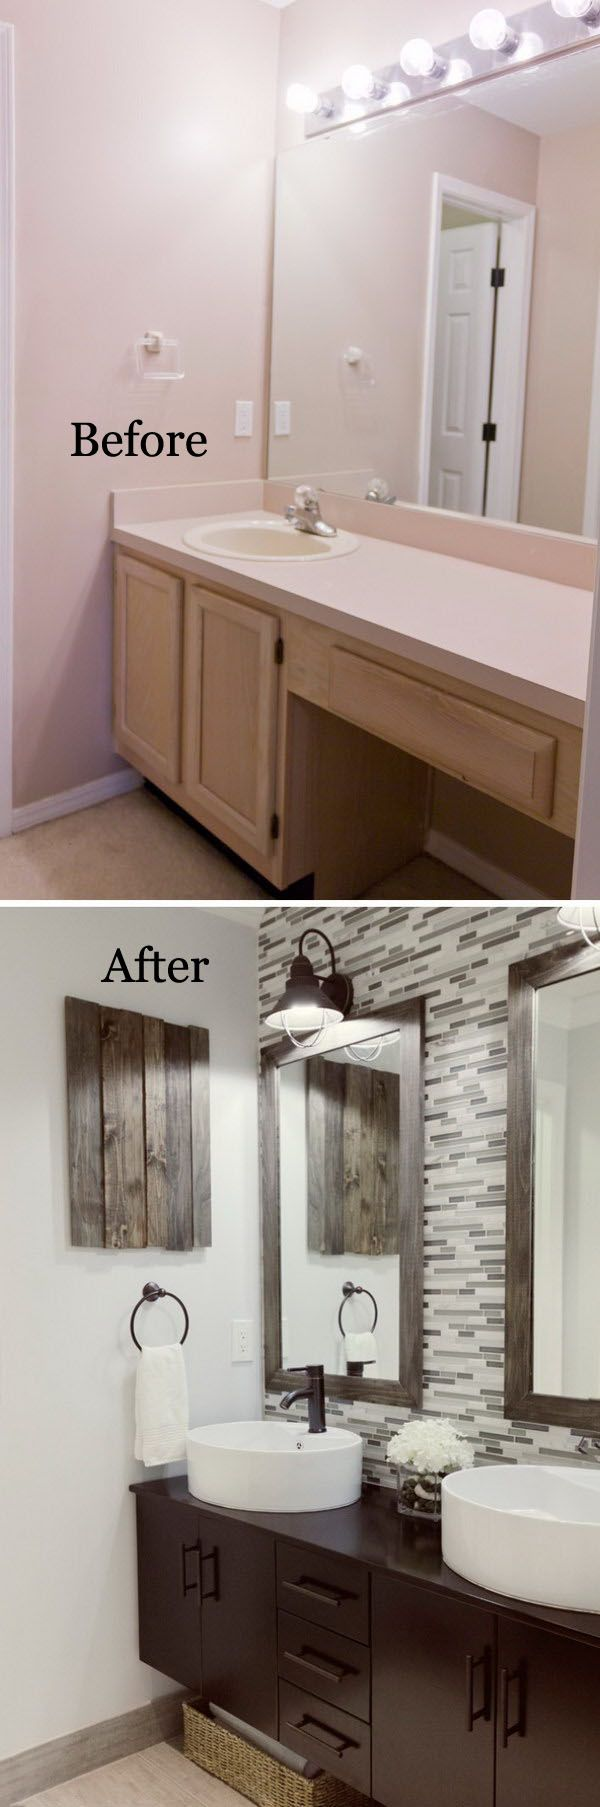 Best 25+ Diy bathroom remodel ideas on Pinterest | Rust update ...